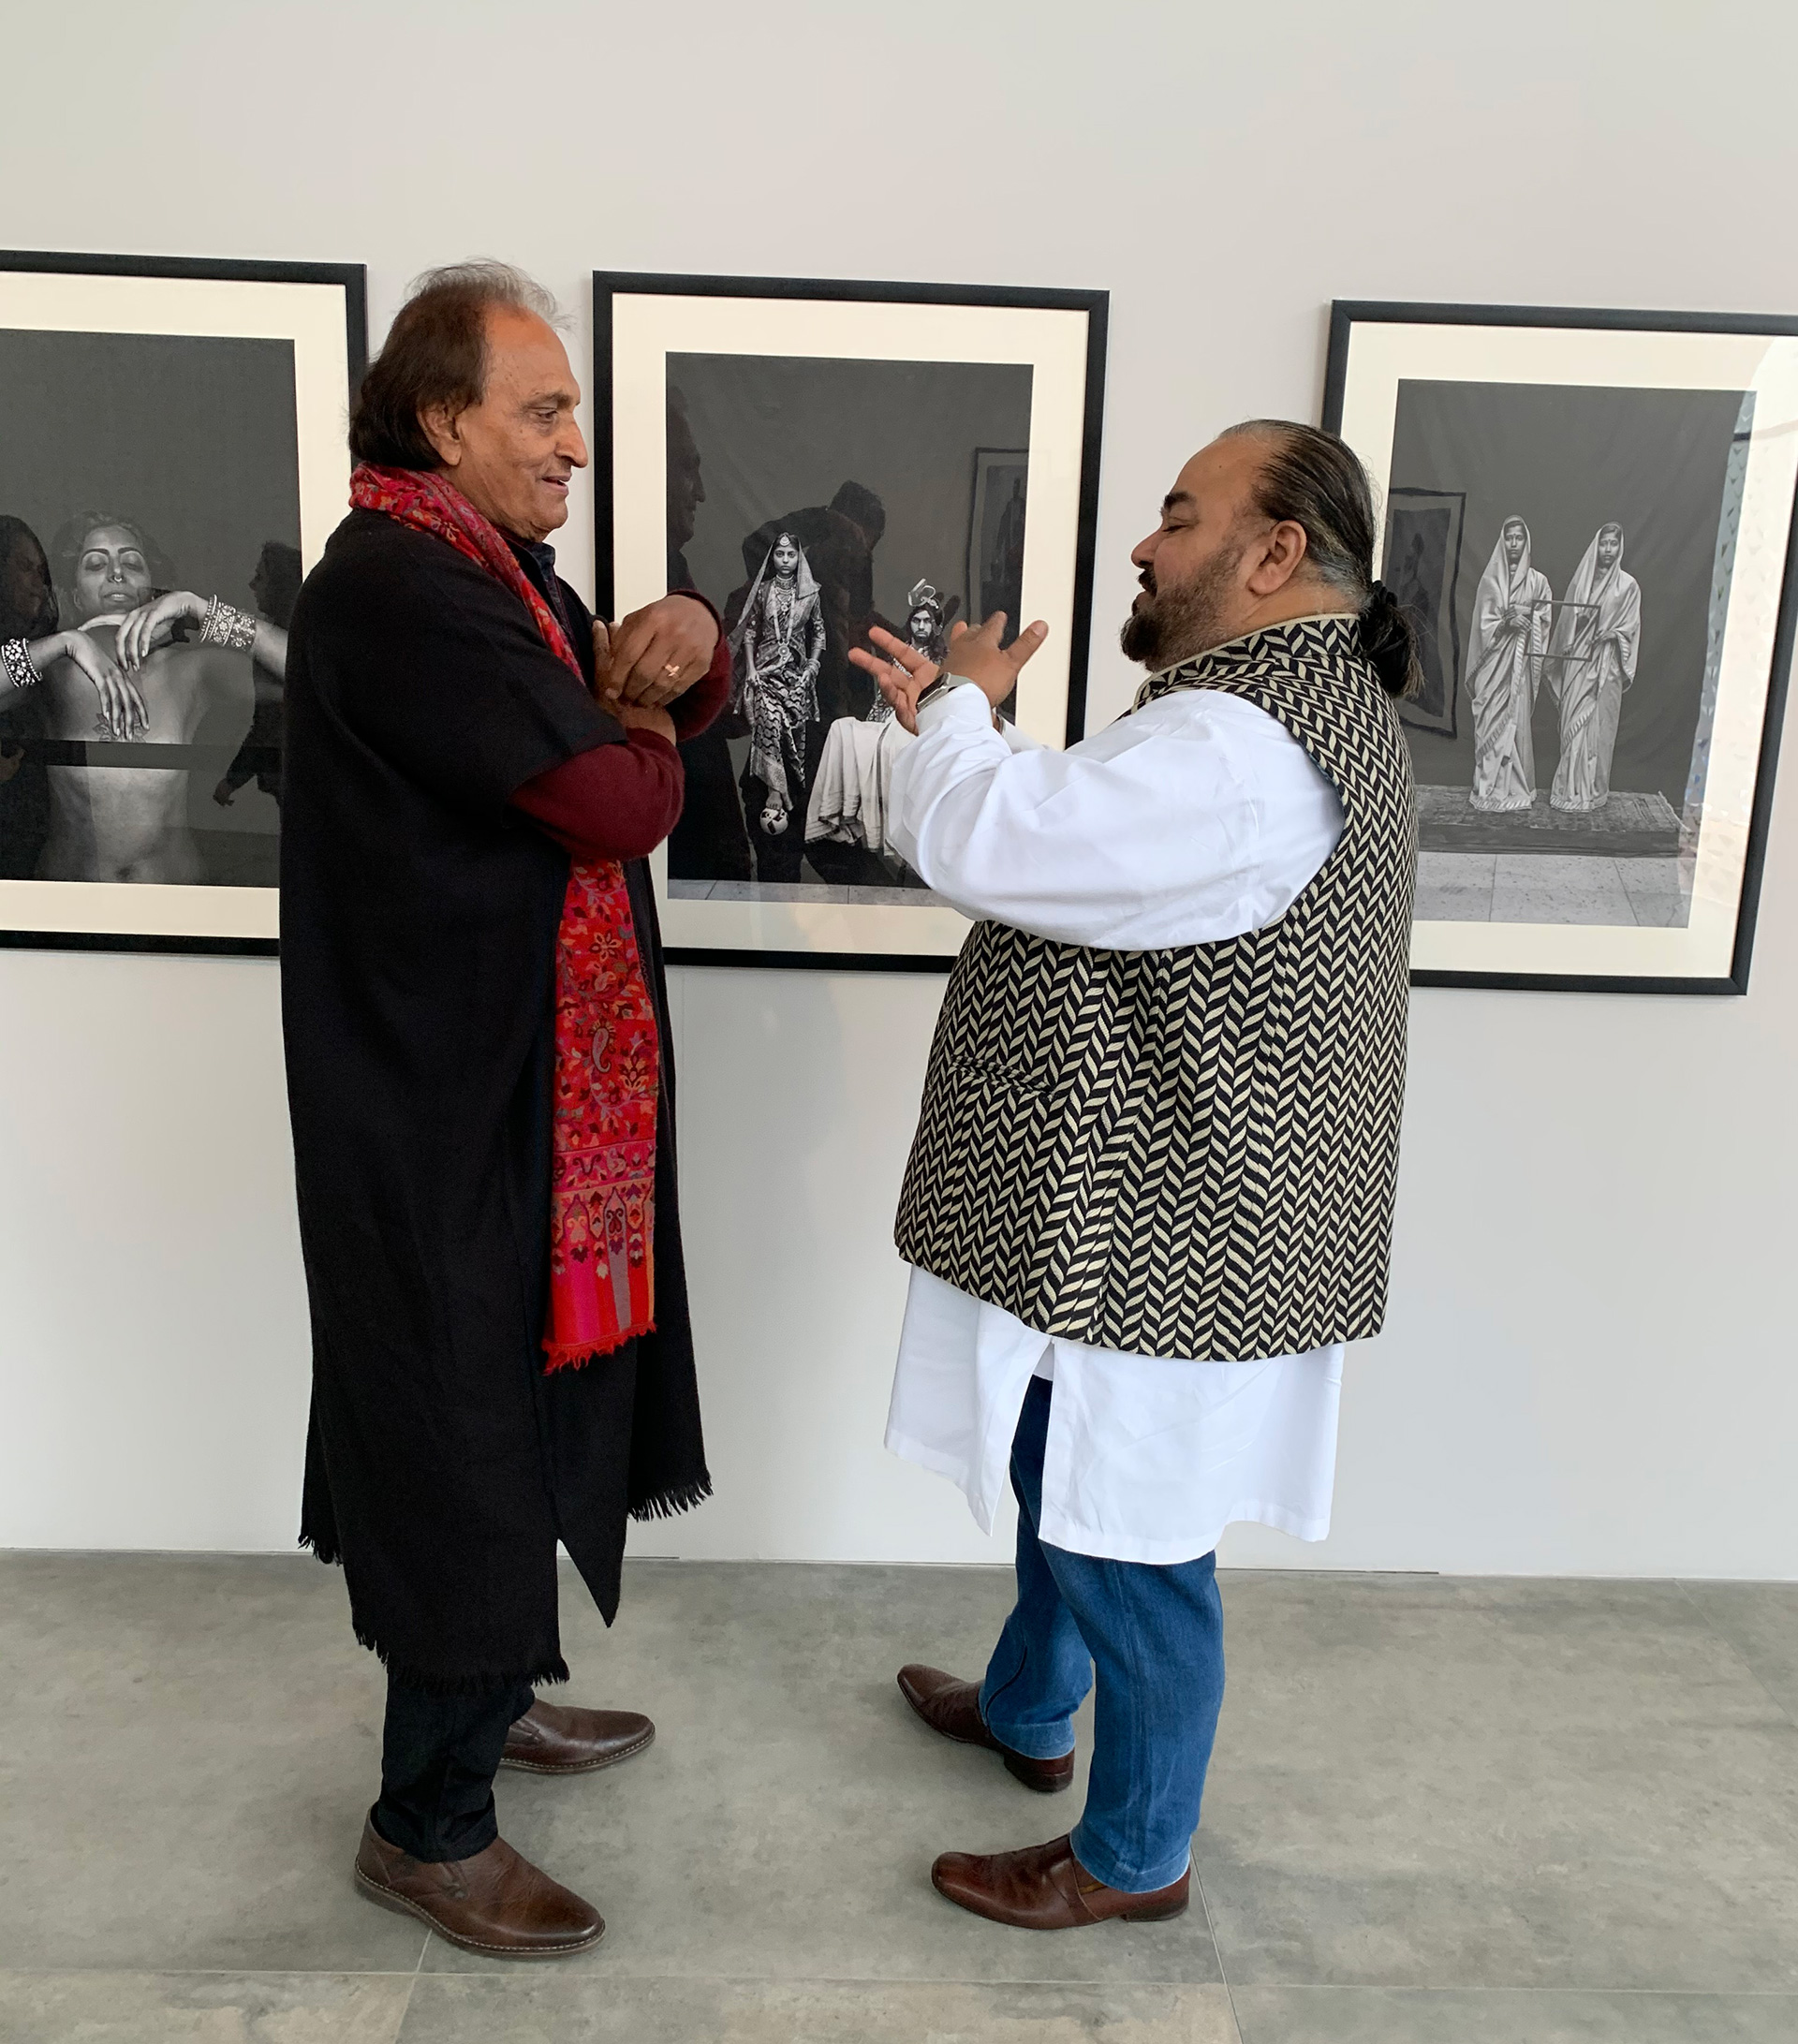 Raghu Rai and JJ Valaya discussing the nuances of photography | JJ Valaya and Raghu Rai at STIR Gallery | Lalaari | STIRworld